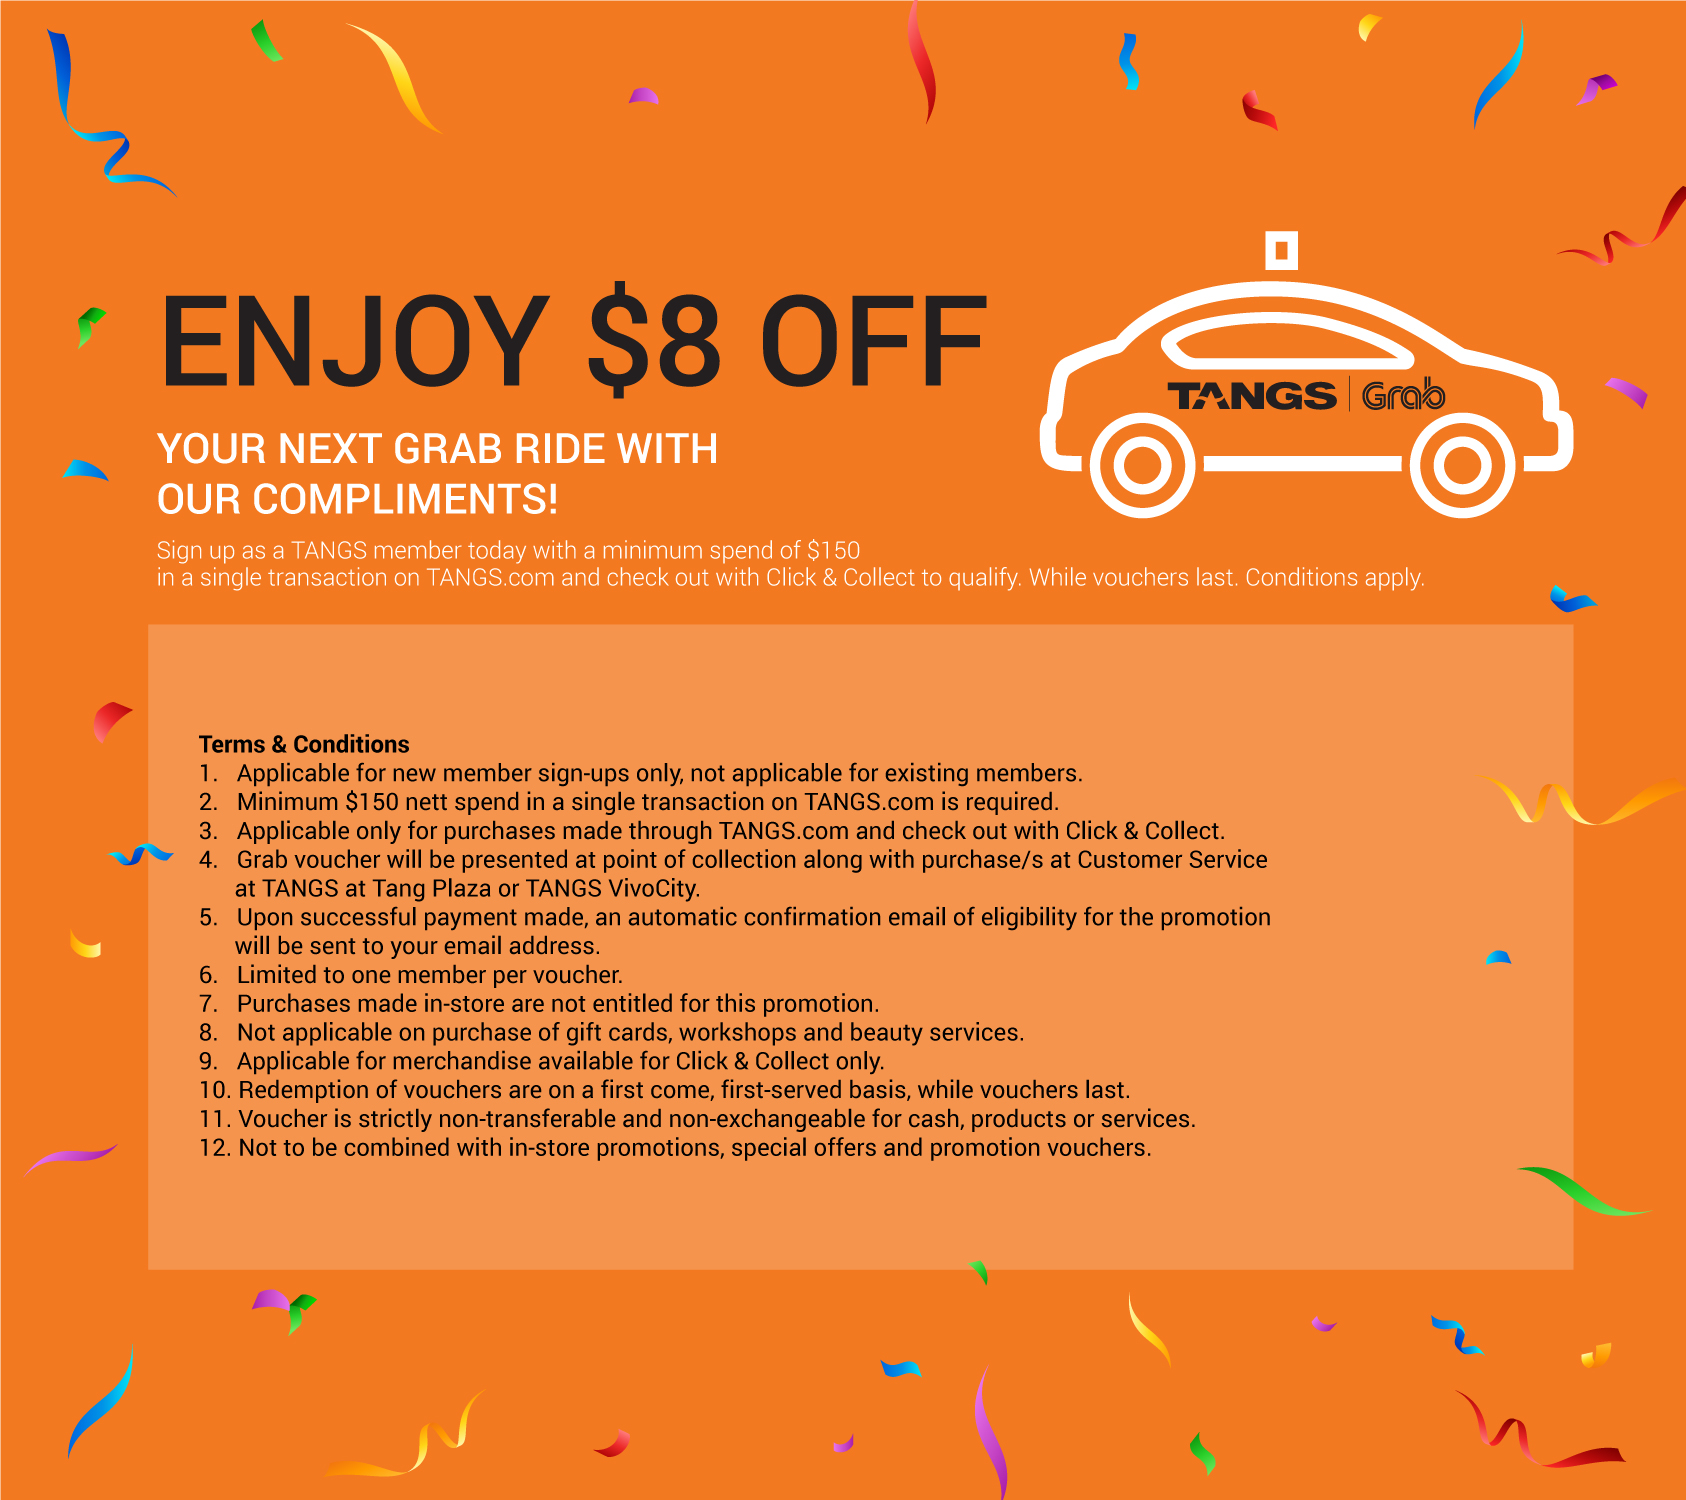 TANGS Singapore Sign Up as a TANGS Member & Enjoy $8 Off Next Grab Ride Promotion While Vouchers Last | Why Not Deals 1 & Promotions